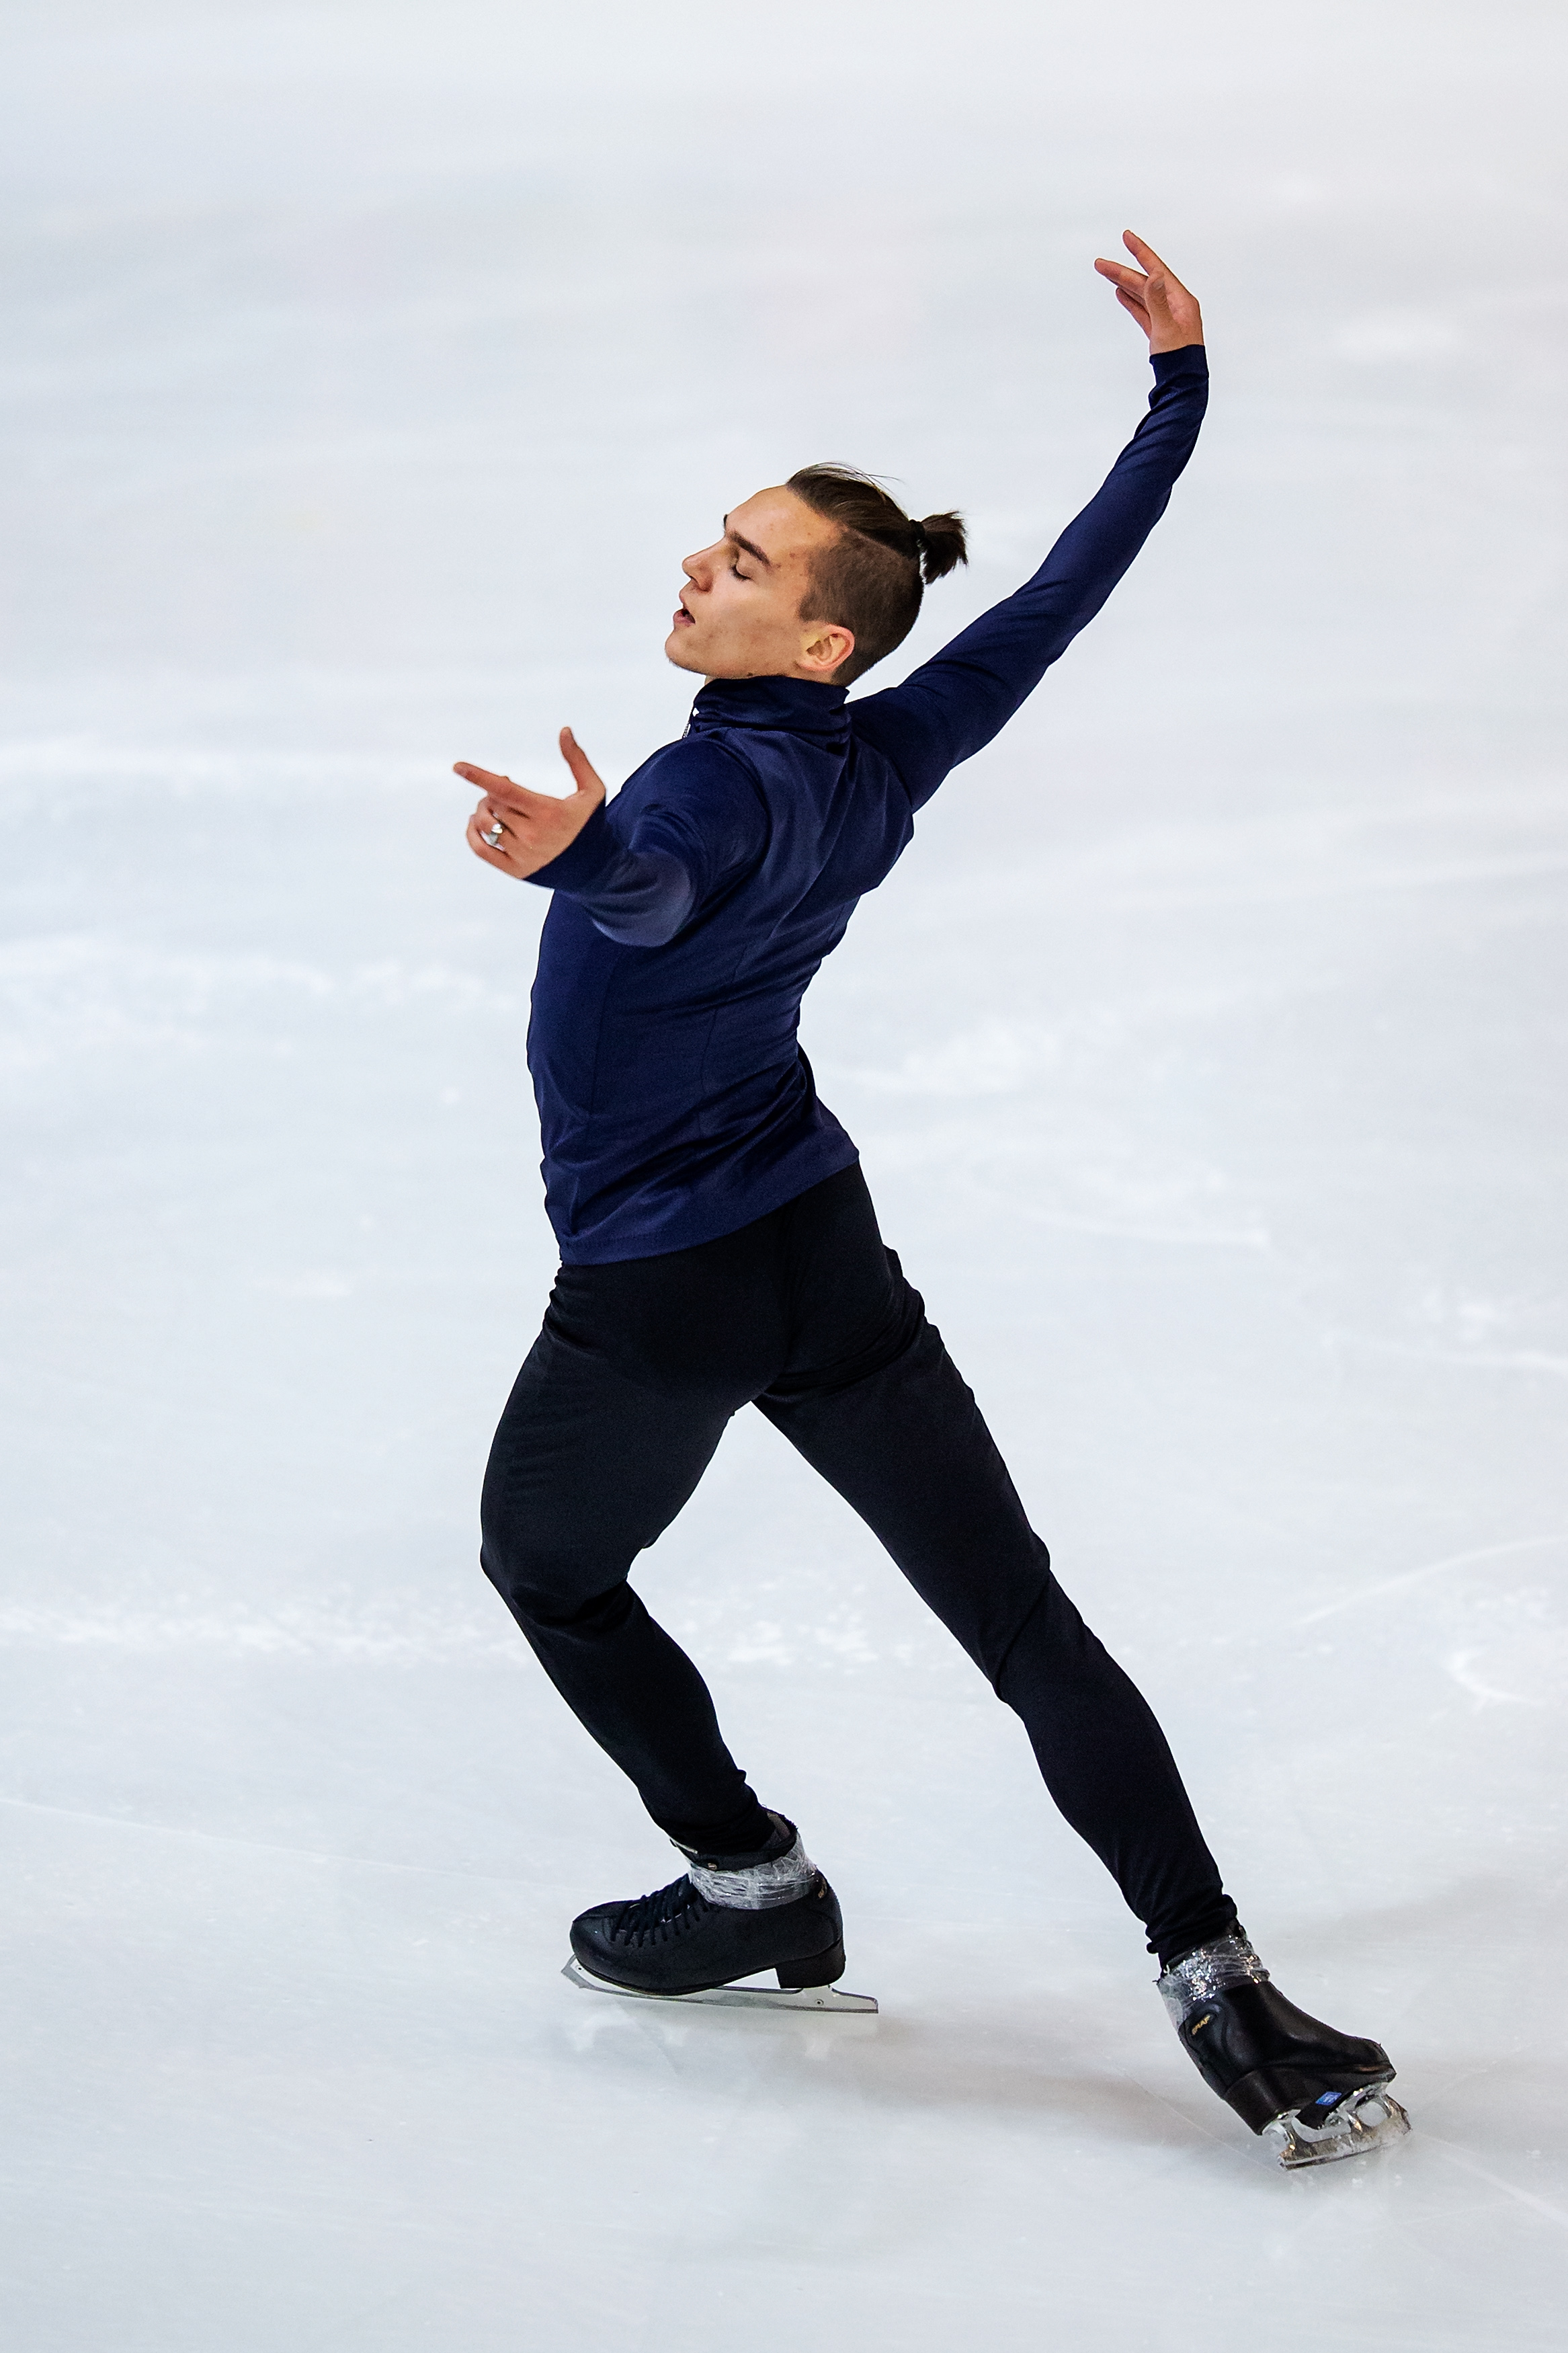 Anton Shulepov of Russia competes in the men's short program during day 1 of the ISU Grand Prix of Figure Skating Internationaux de France at Polesud Ice Skating Rink on Nov. 01, 2019 in Grenoble, France.